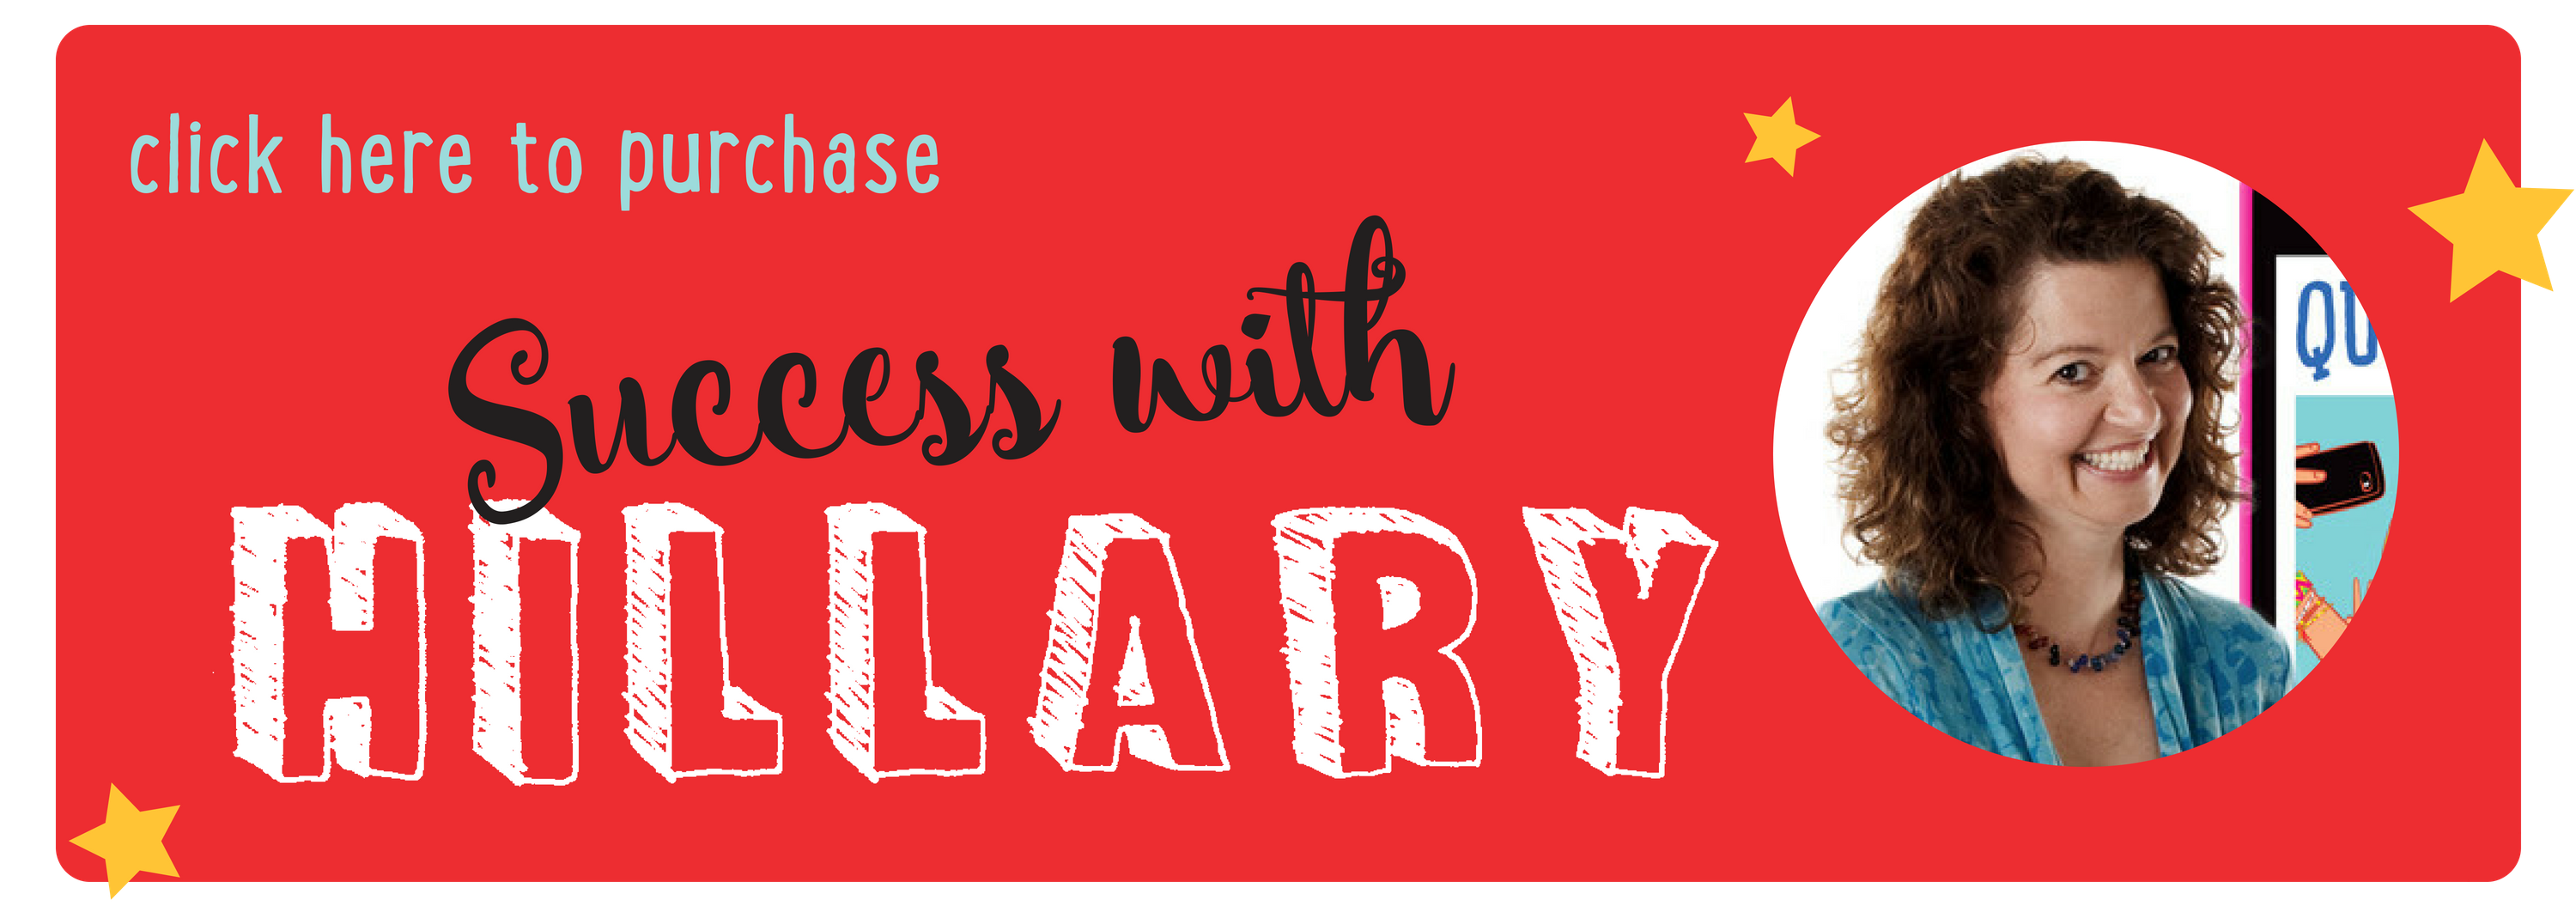 Middle Grade Mastery Success with Hillary at Children's Book Academy